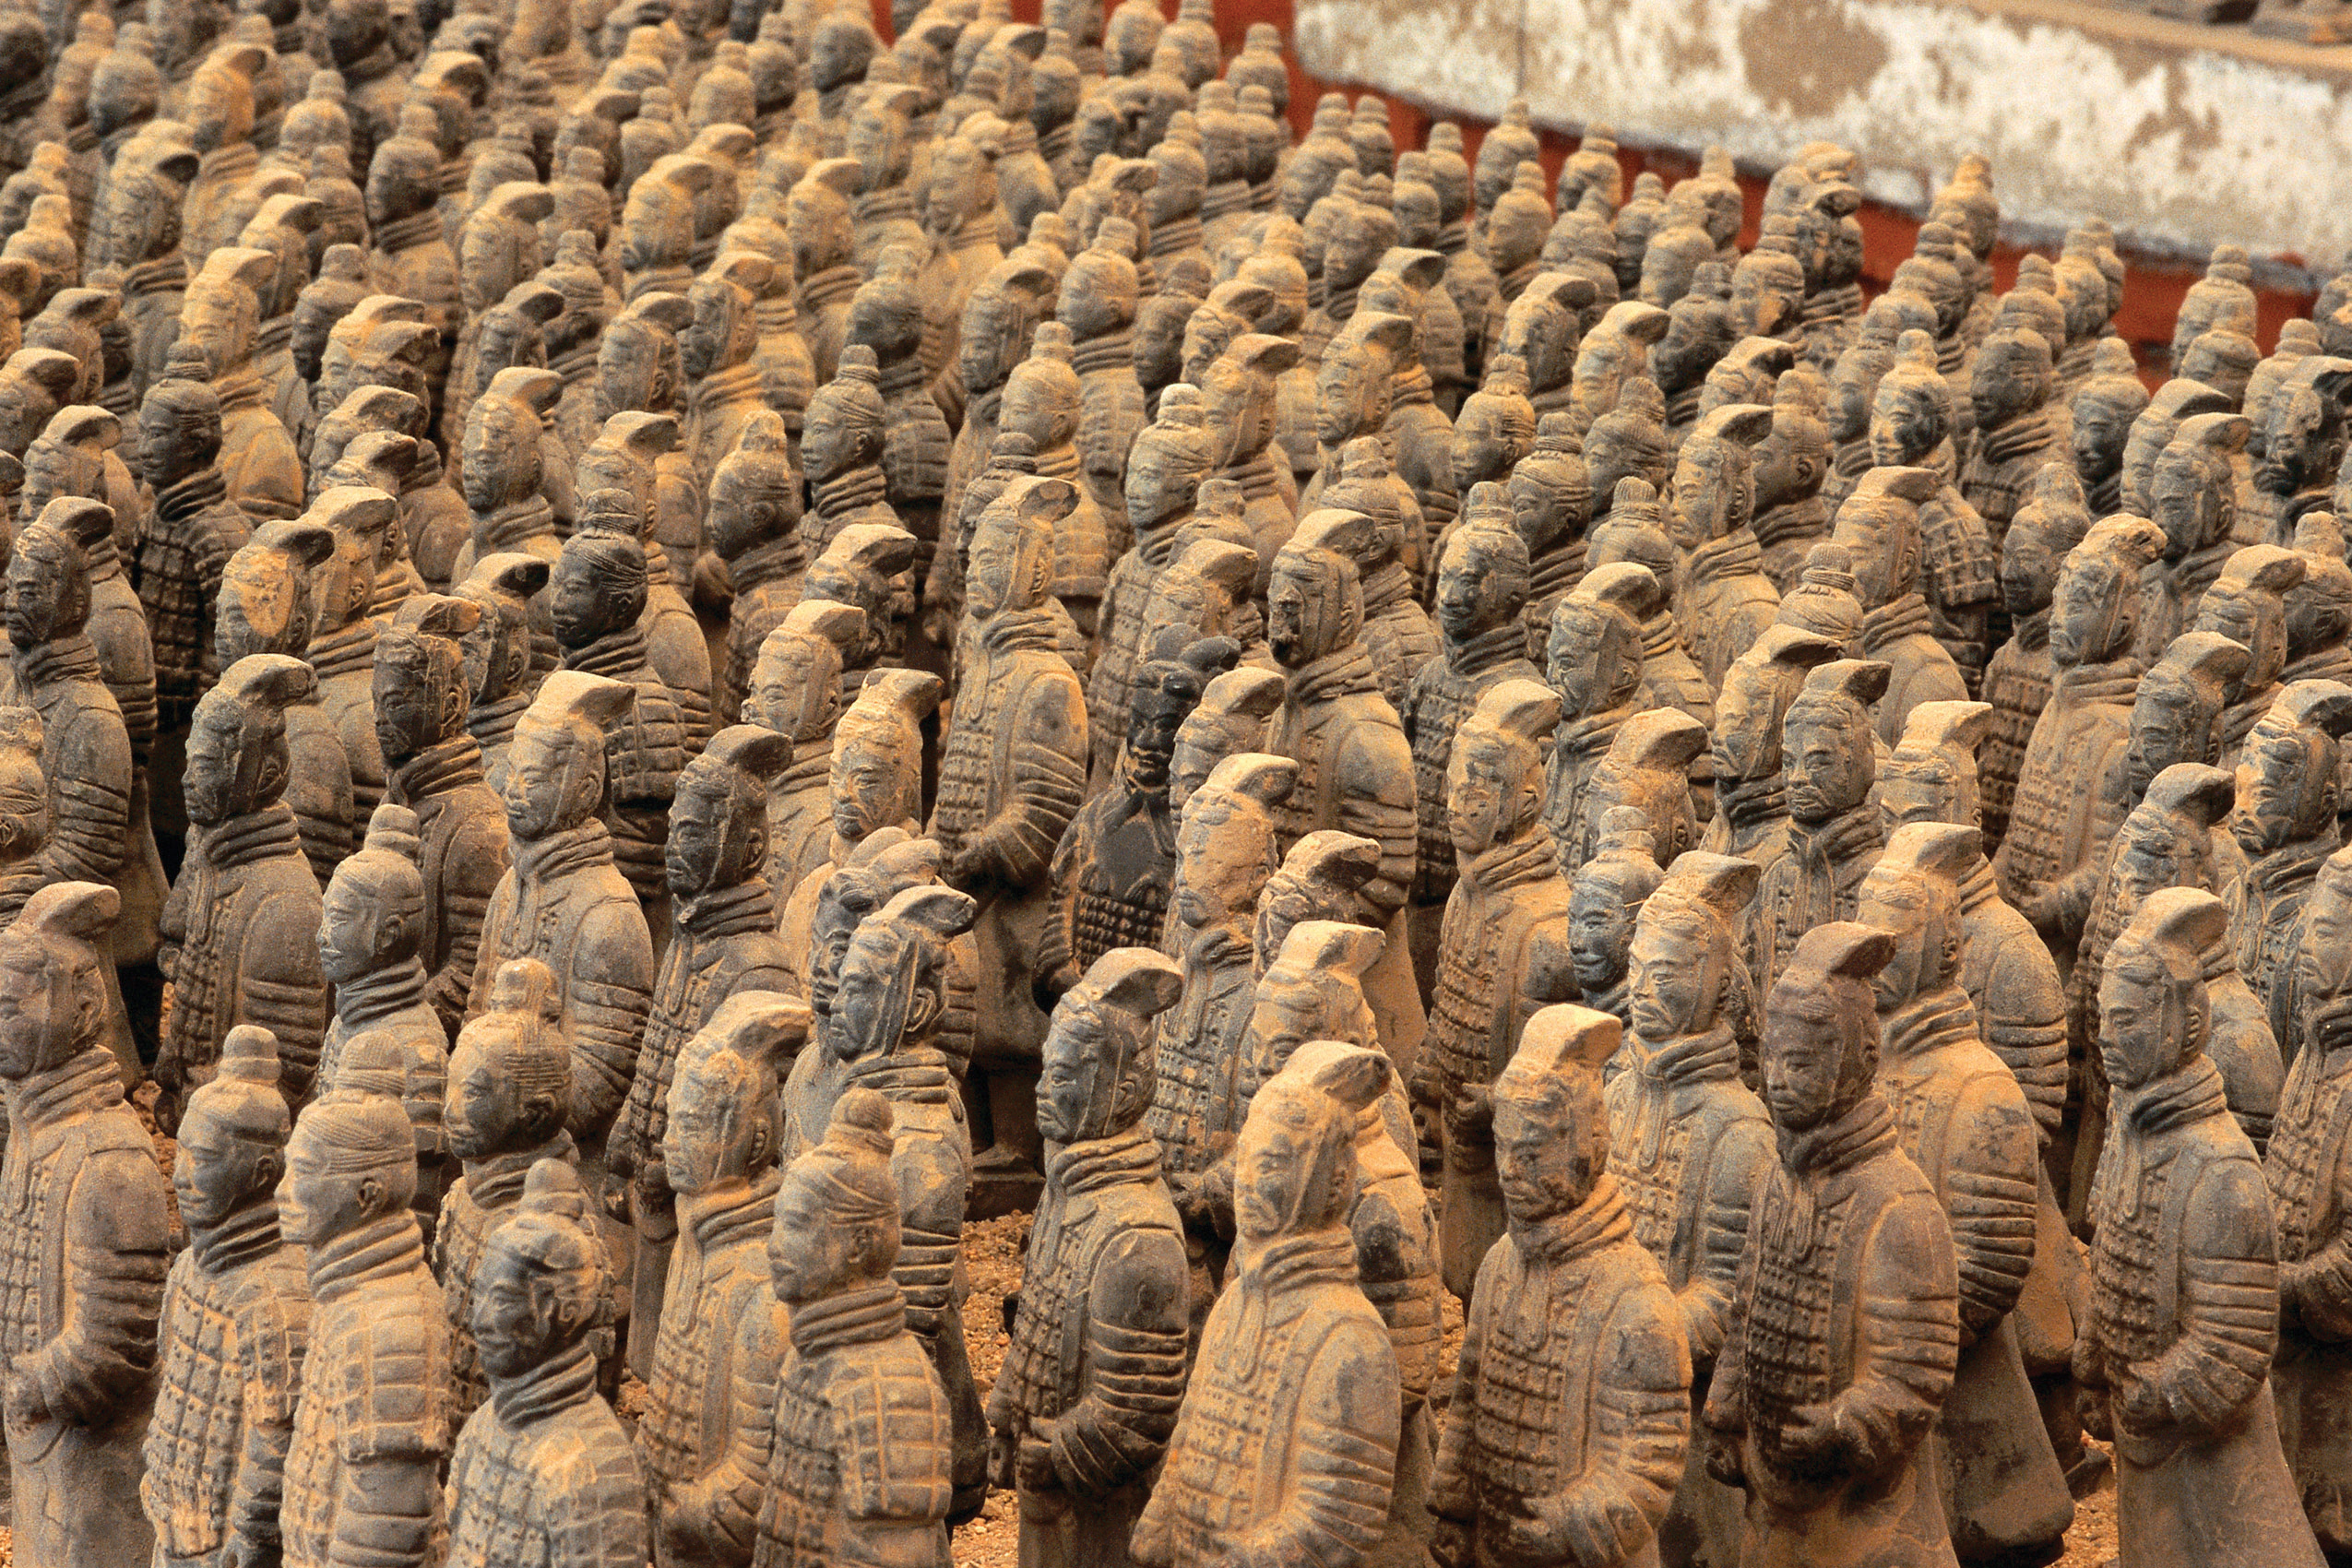 The famous Terra Cotta Warriors in Xi'an